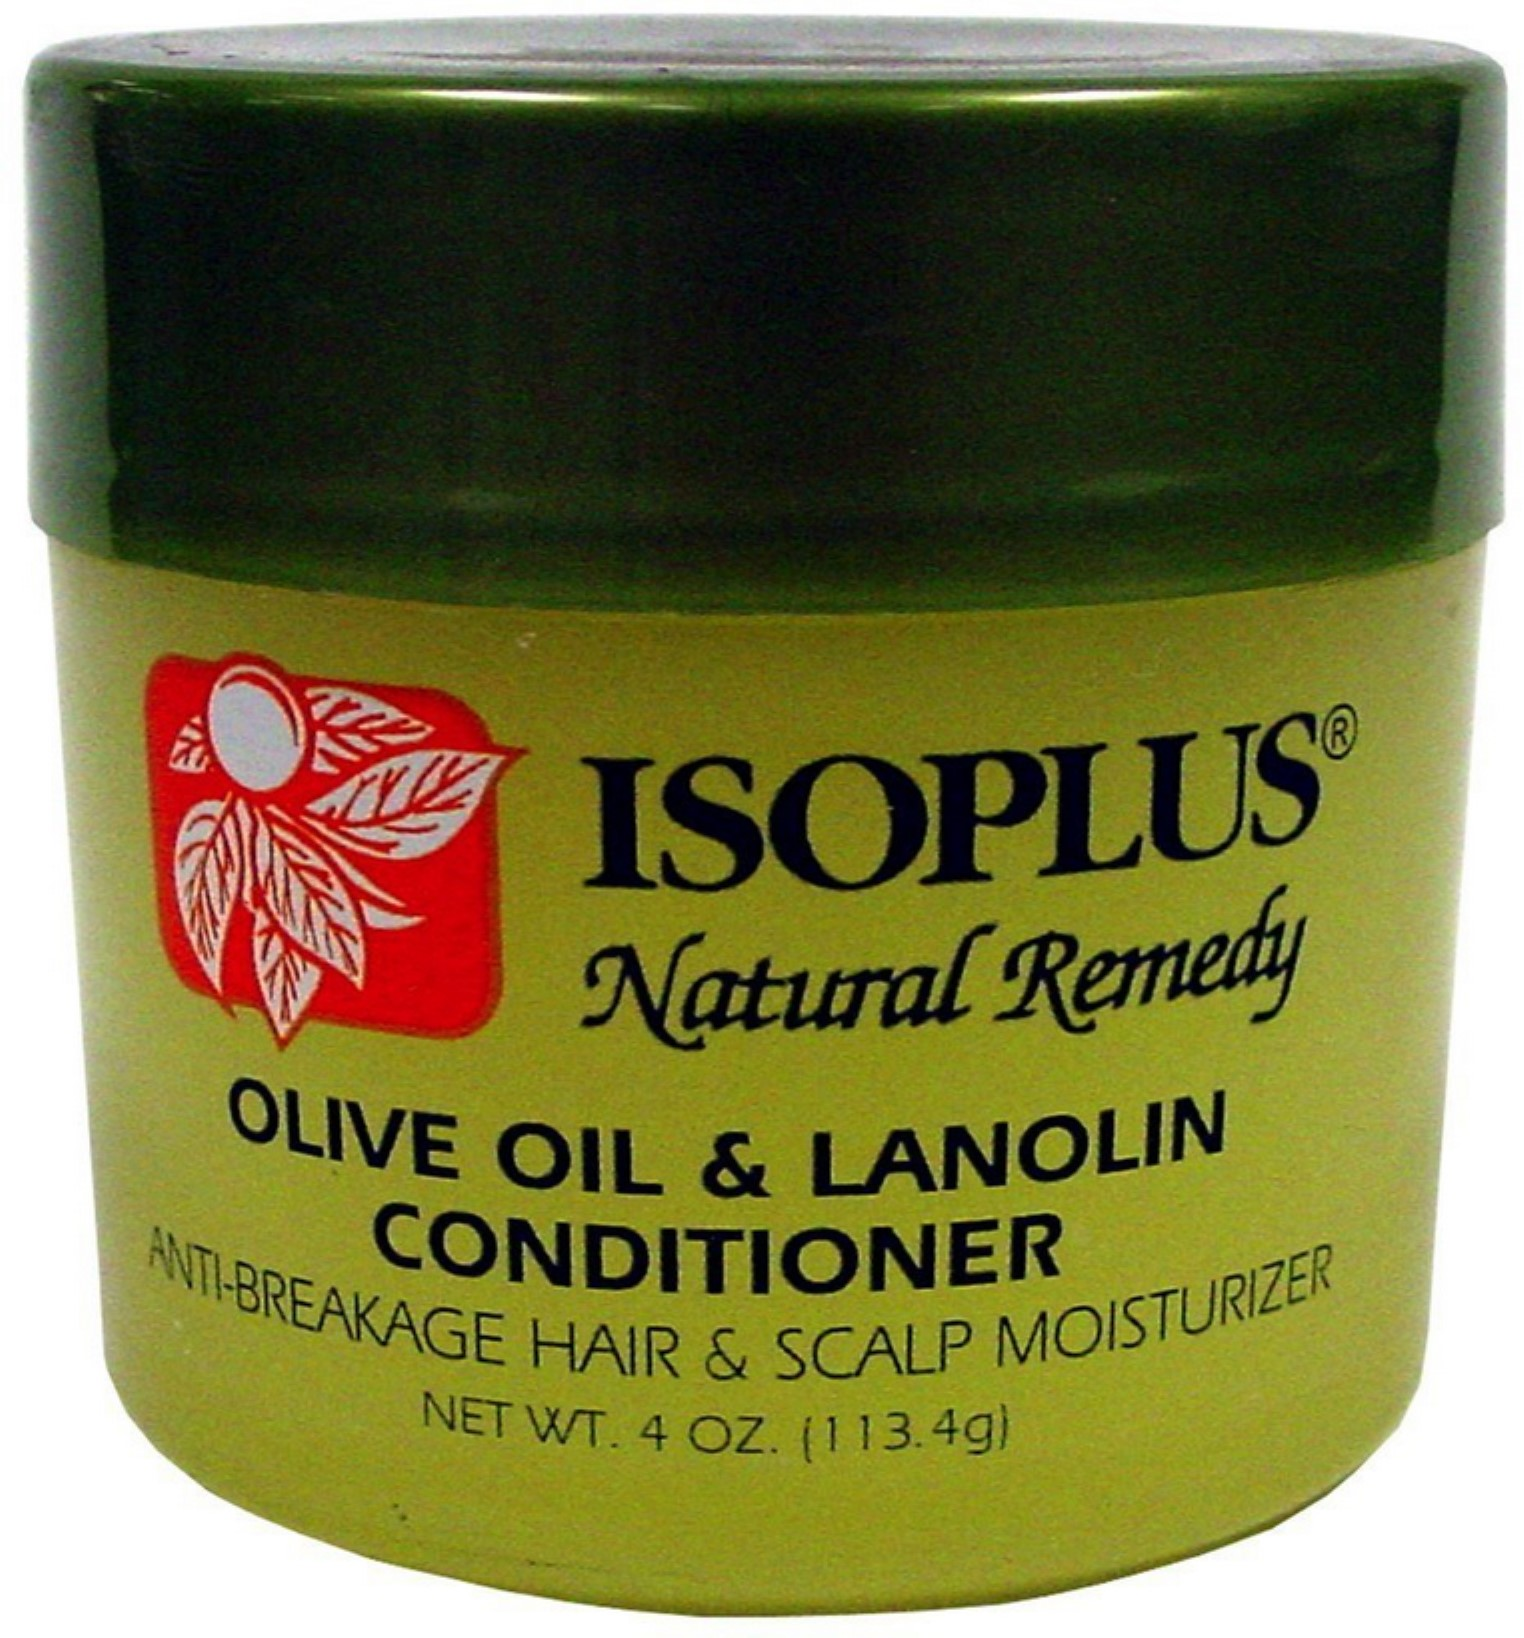 Isoplus Natural  Remedy Olive Oil & Lanolin Contitioner, 4 oz (Pack of 2)